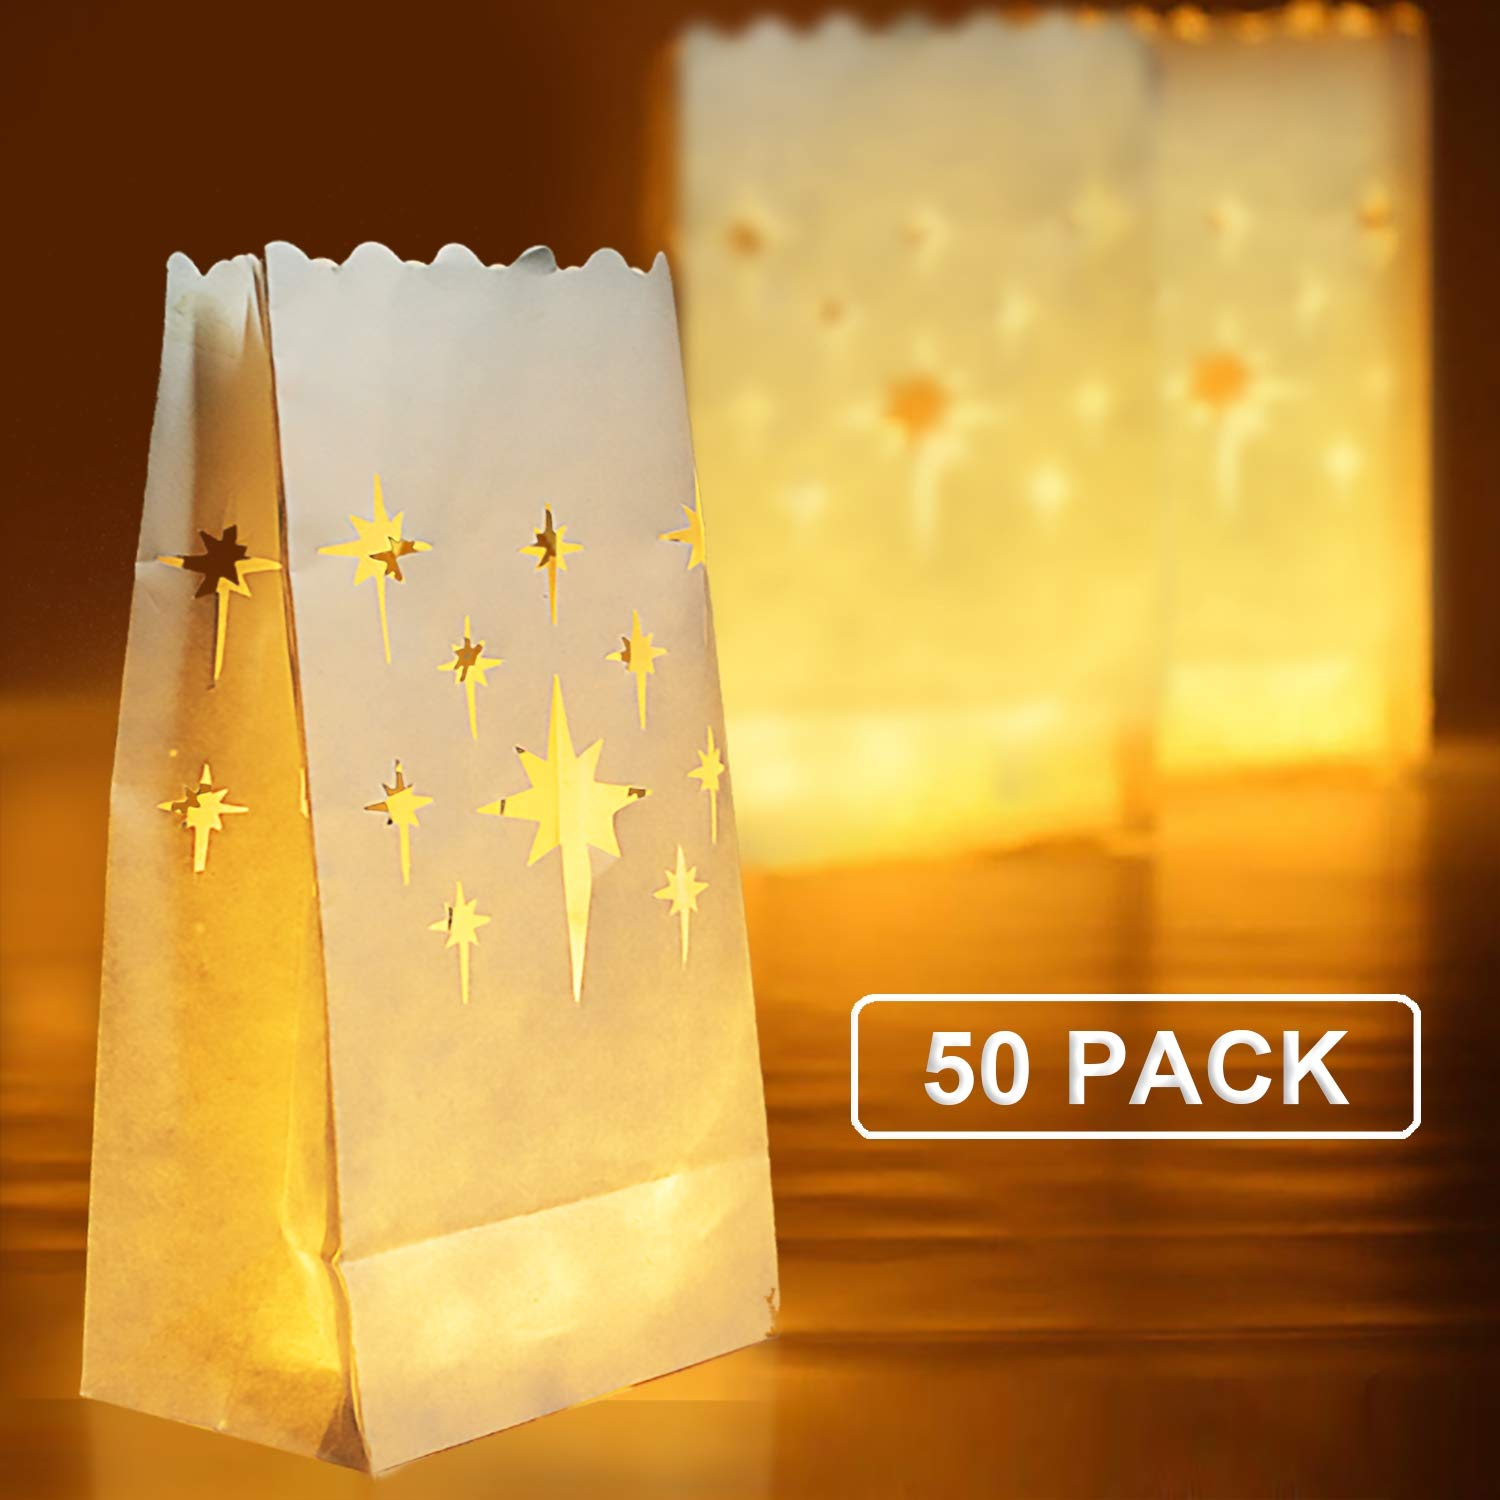 Homemory 50 PCS White Luminary Bags, Flame Resistant Candle Bags, Stars Design Luminaries for Wedding, Halloween, Birthday, Party by Homemory